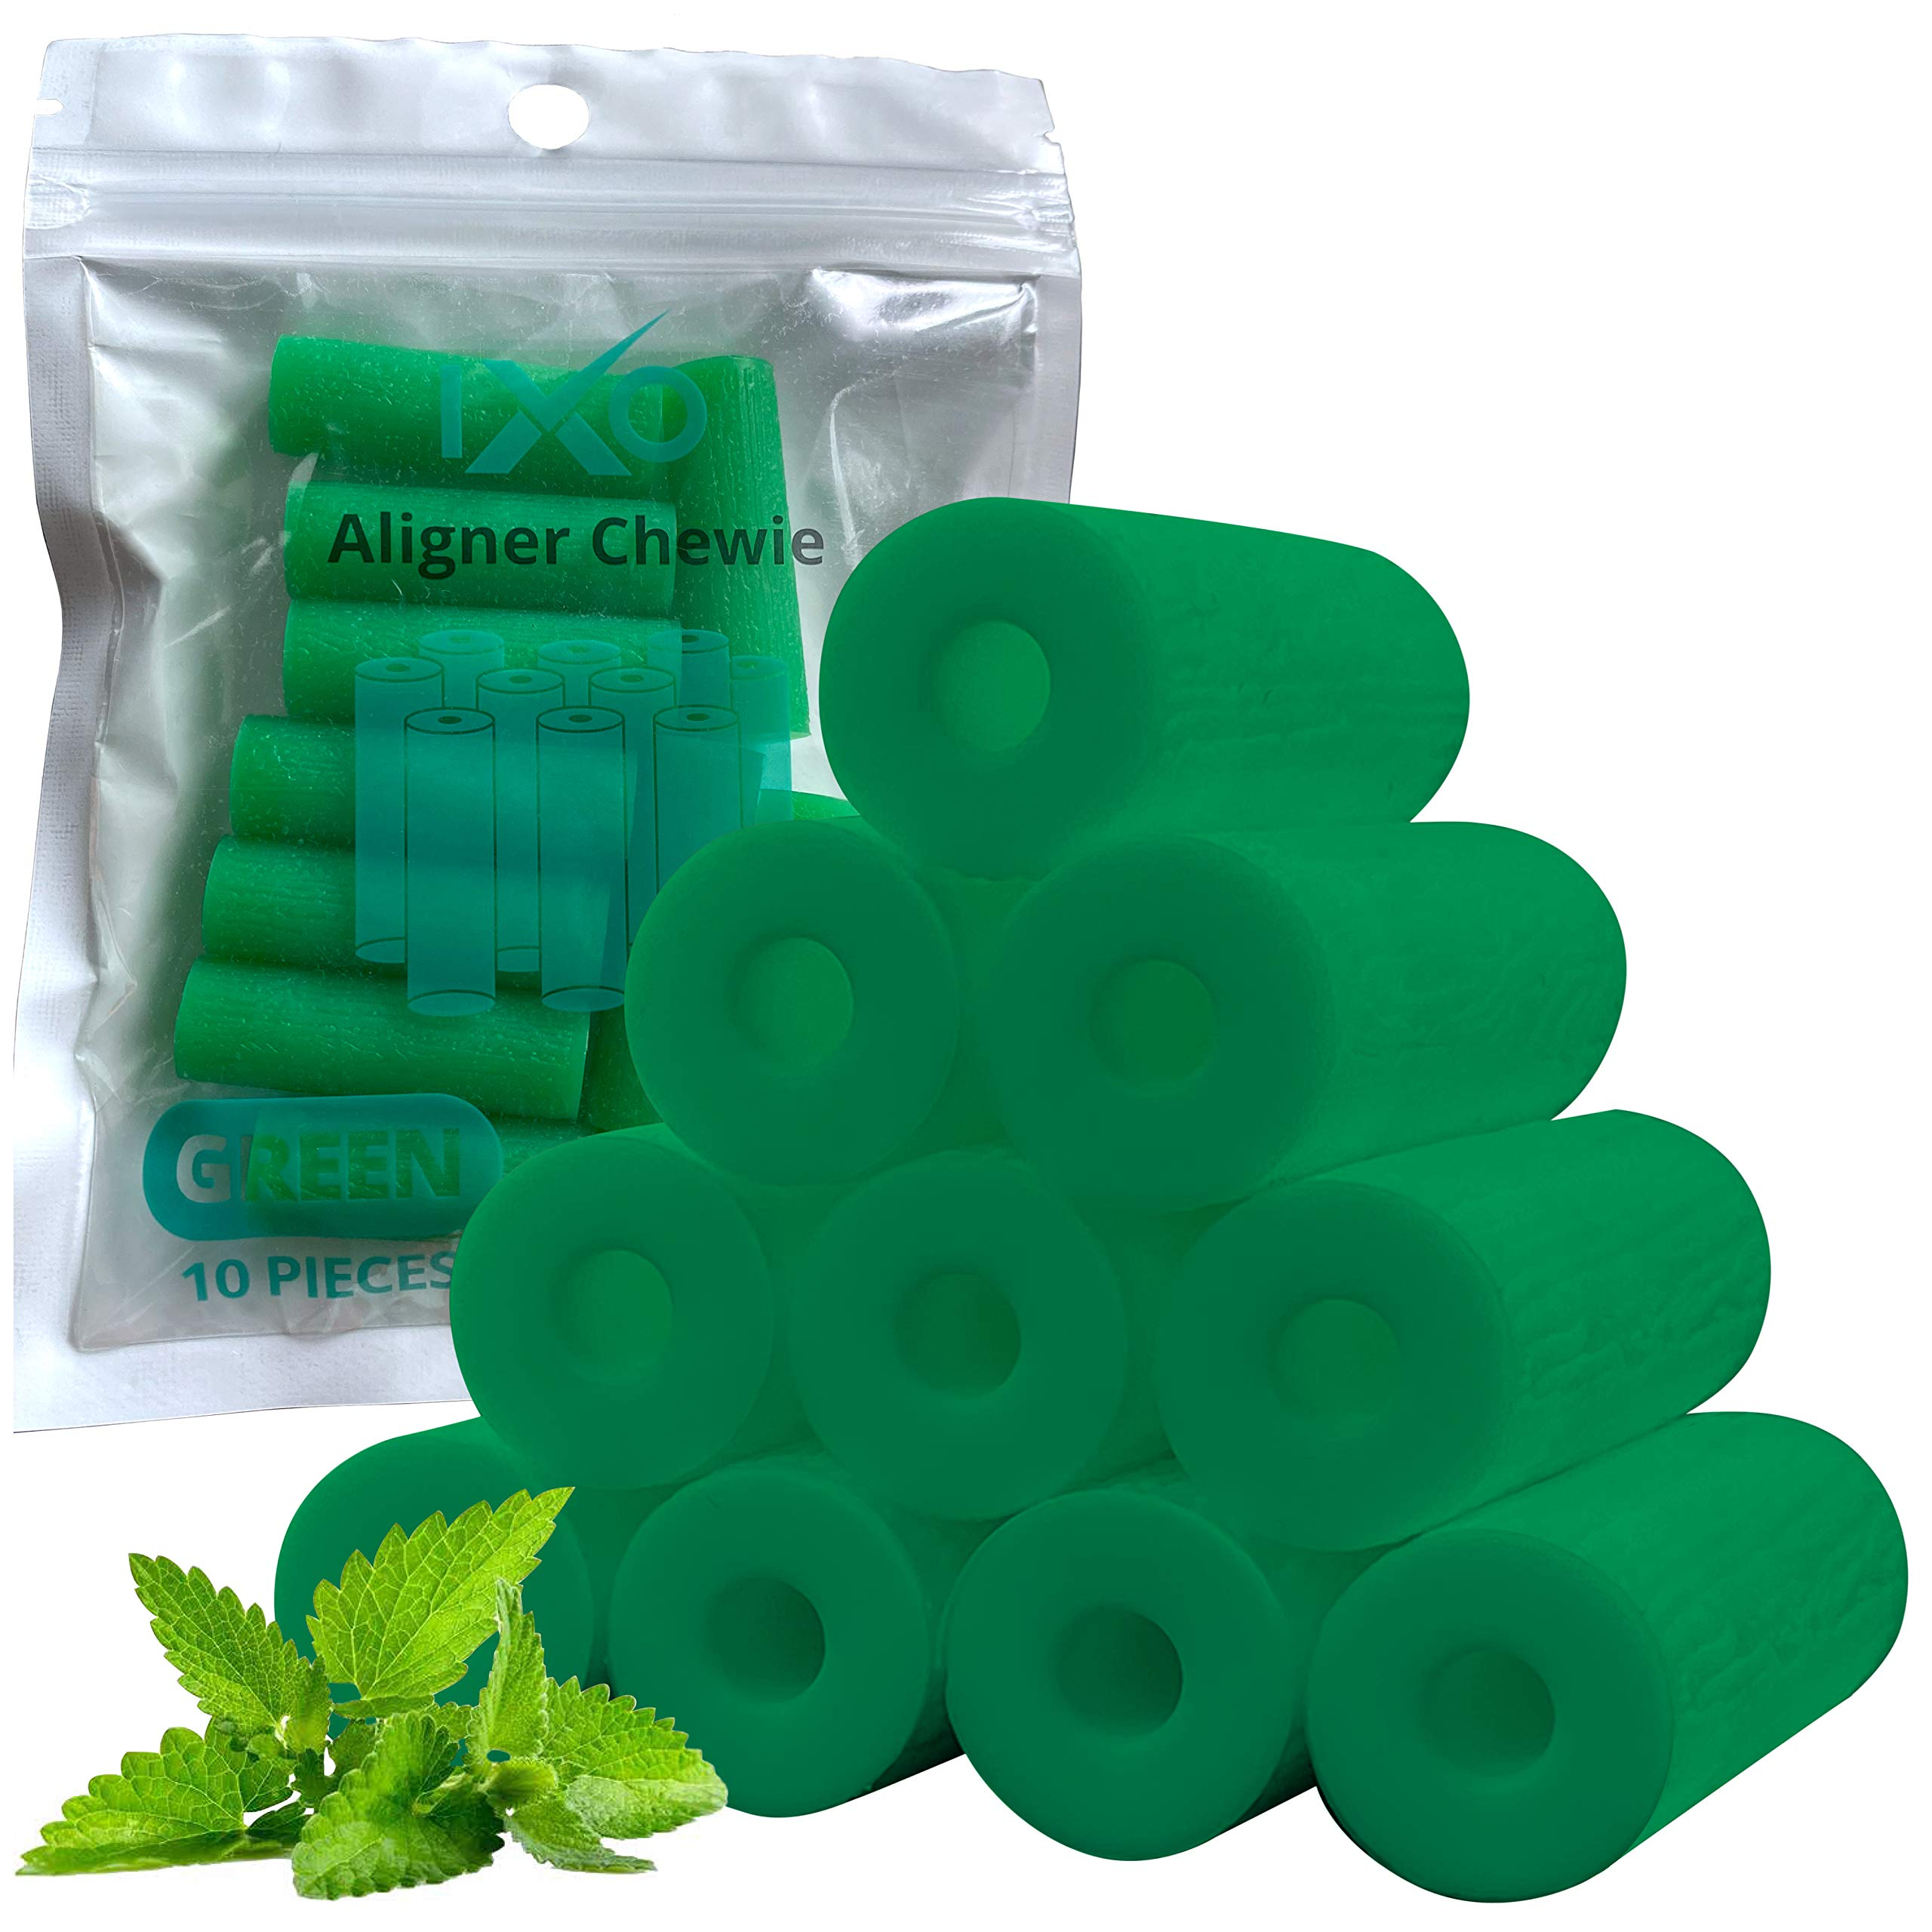 IXO Aligner Seater Chewies for Invisalign Aligners, Mint Scent, Bulk Pack in Resealable Bag (10 PCs) (Green)